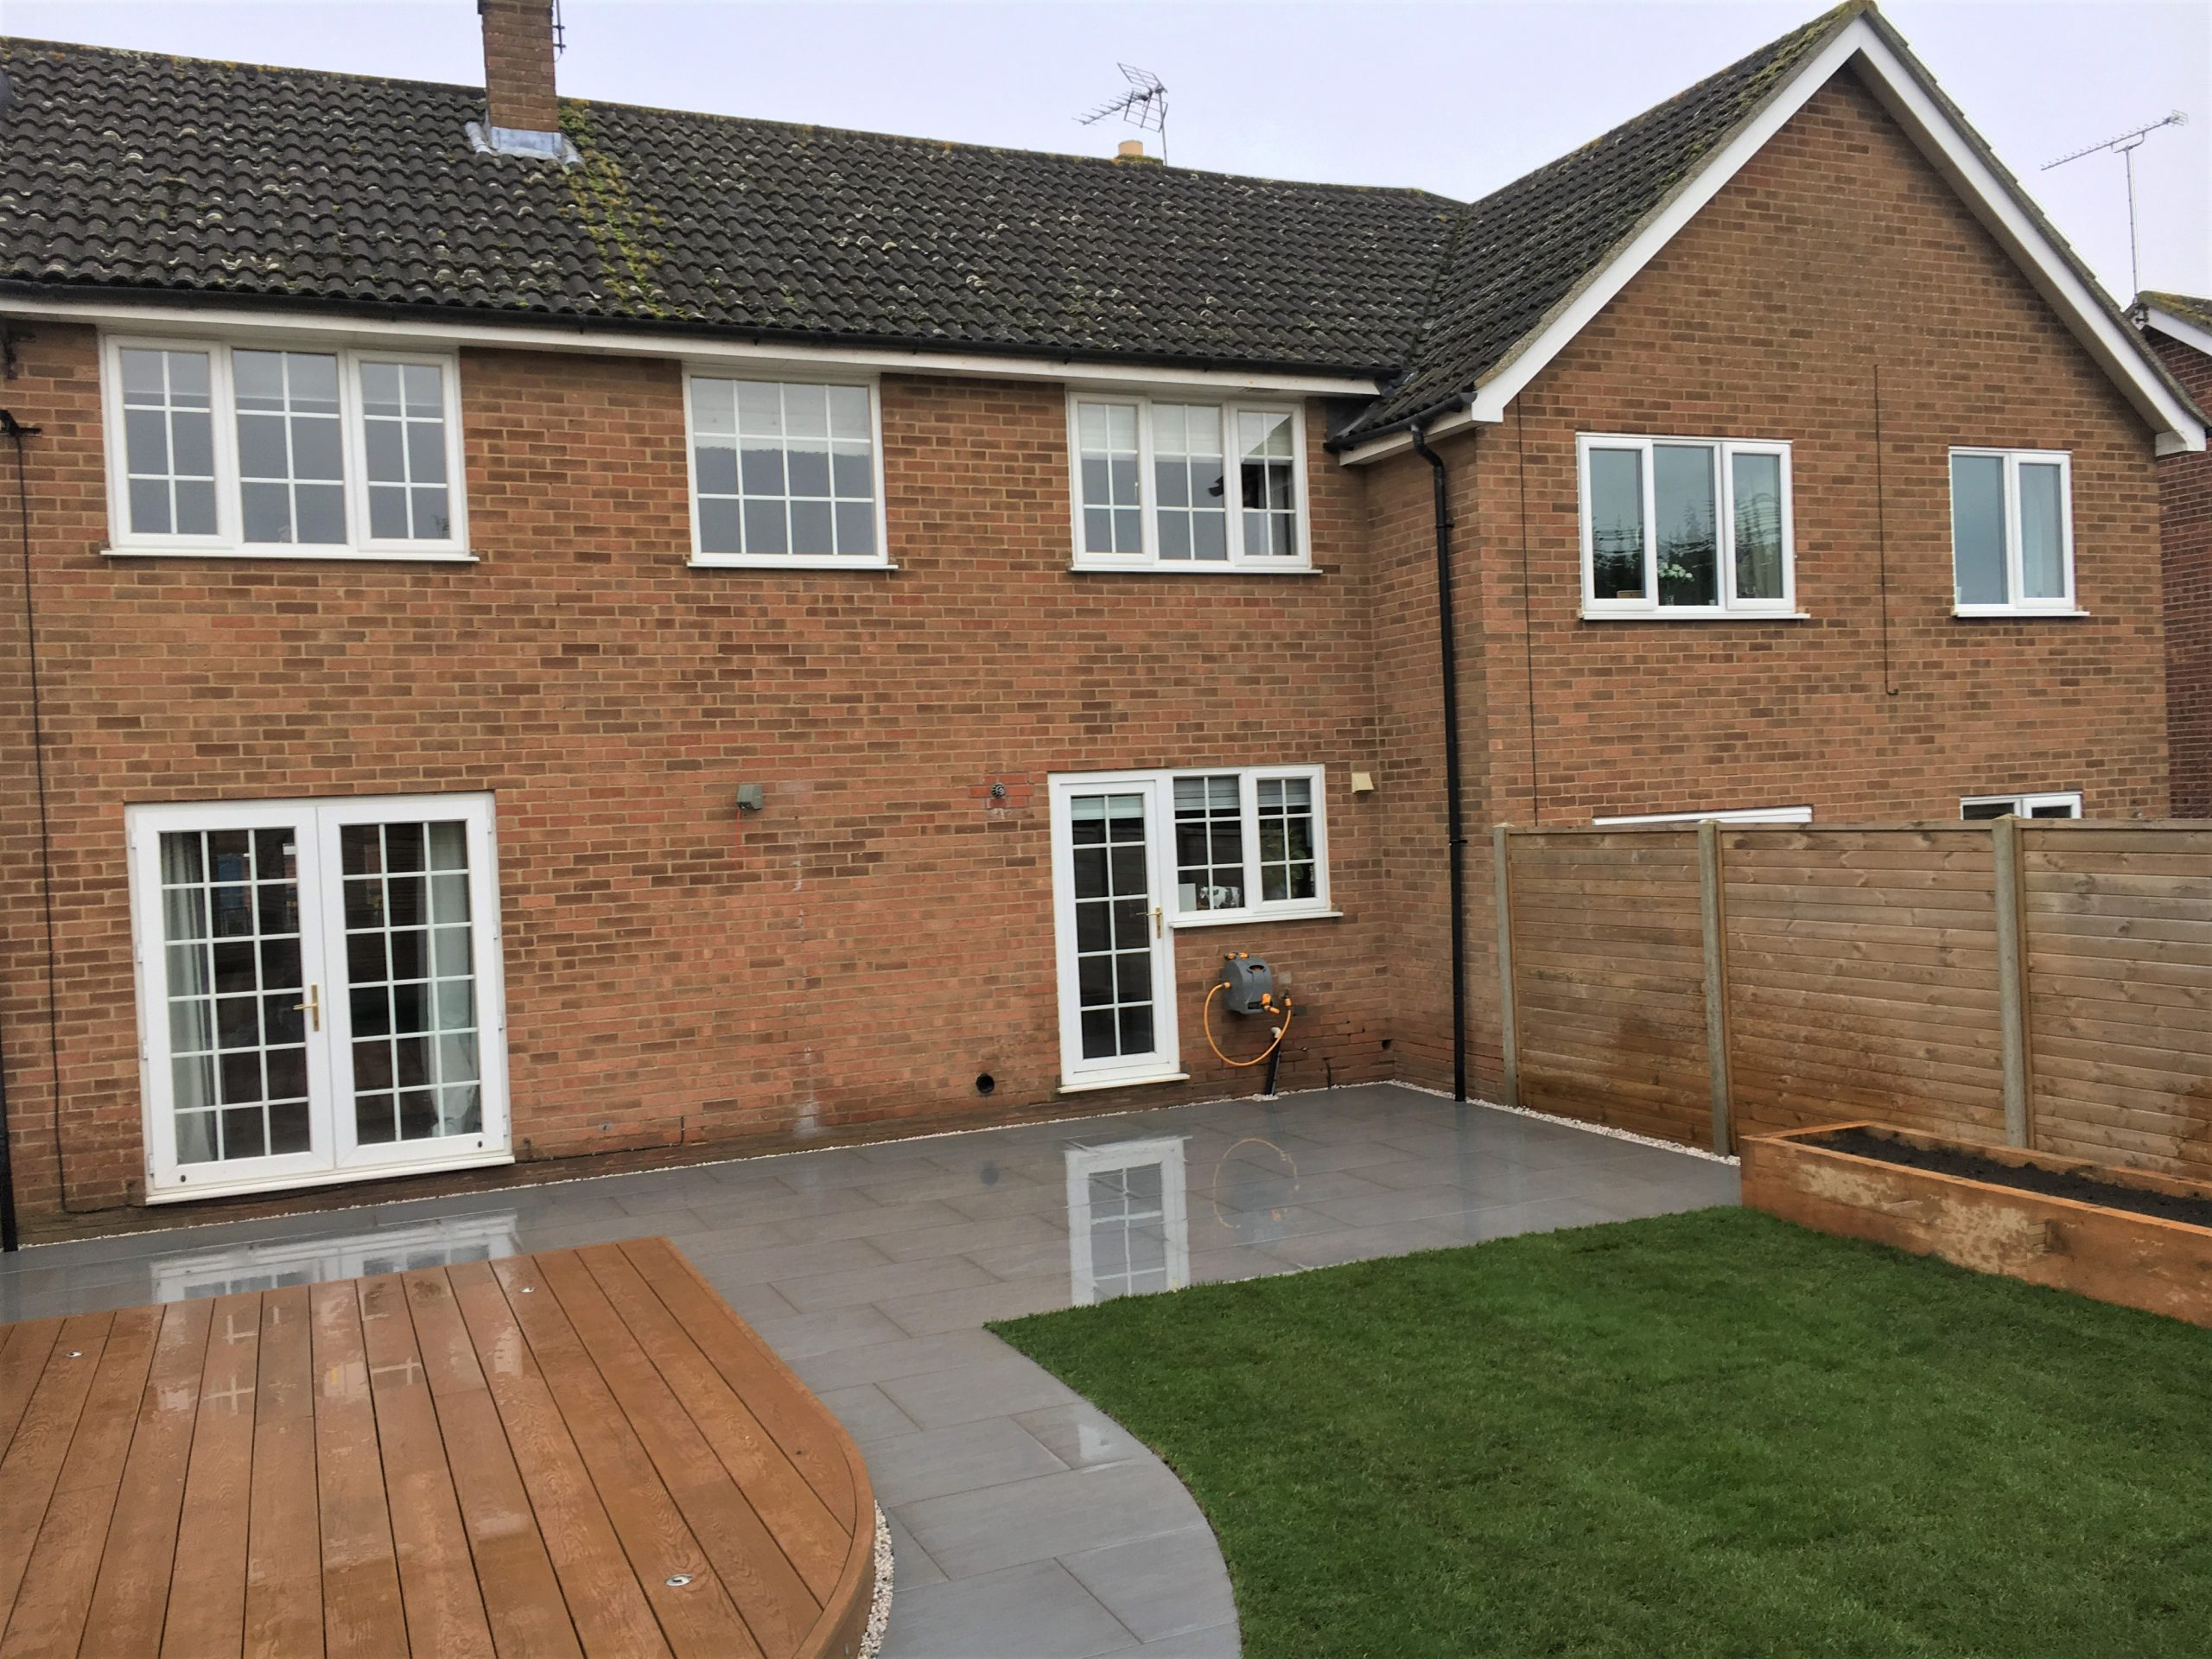 Porcelain patio & Millboard decking completed with new lawn and flower beds